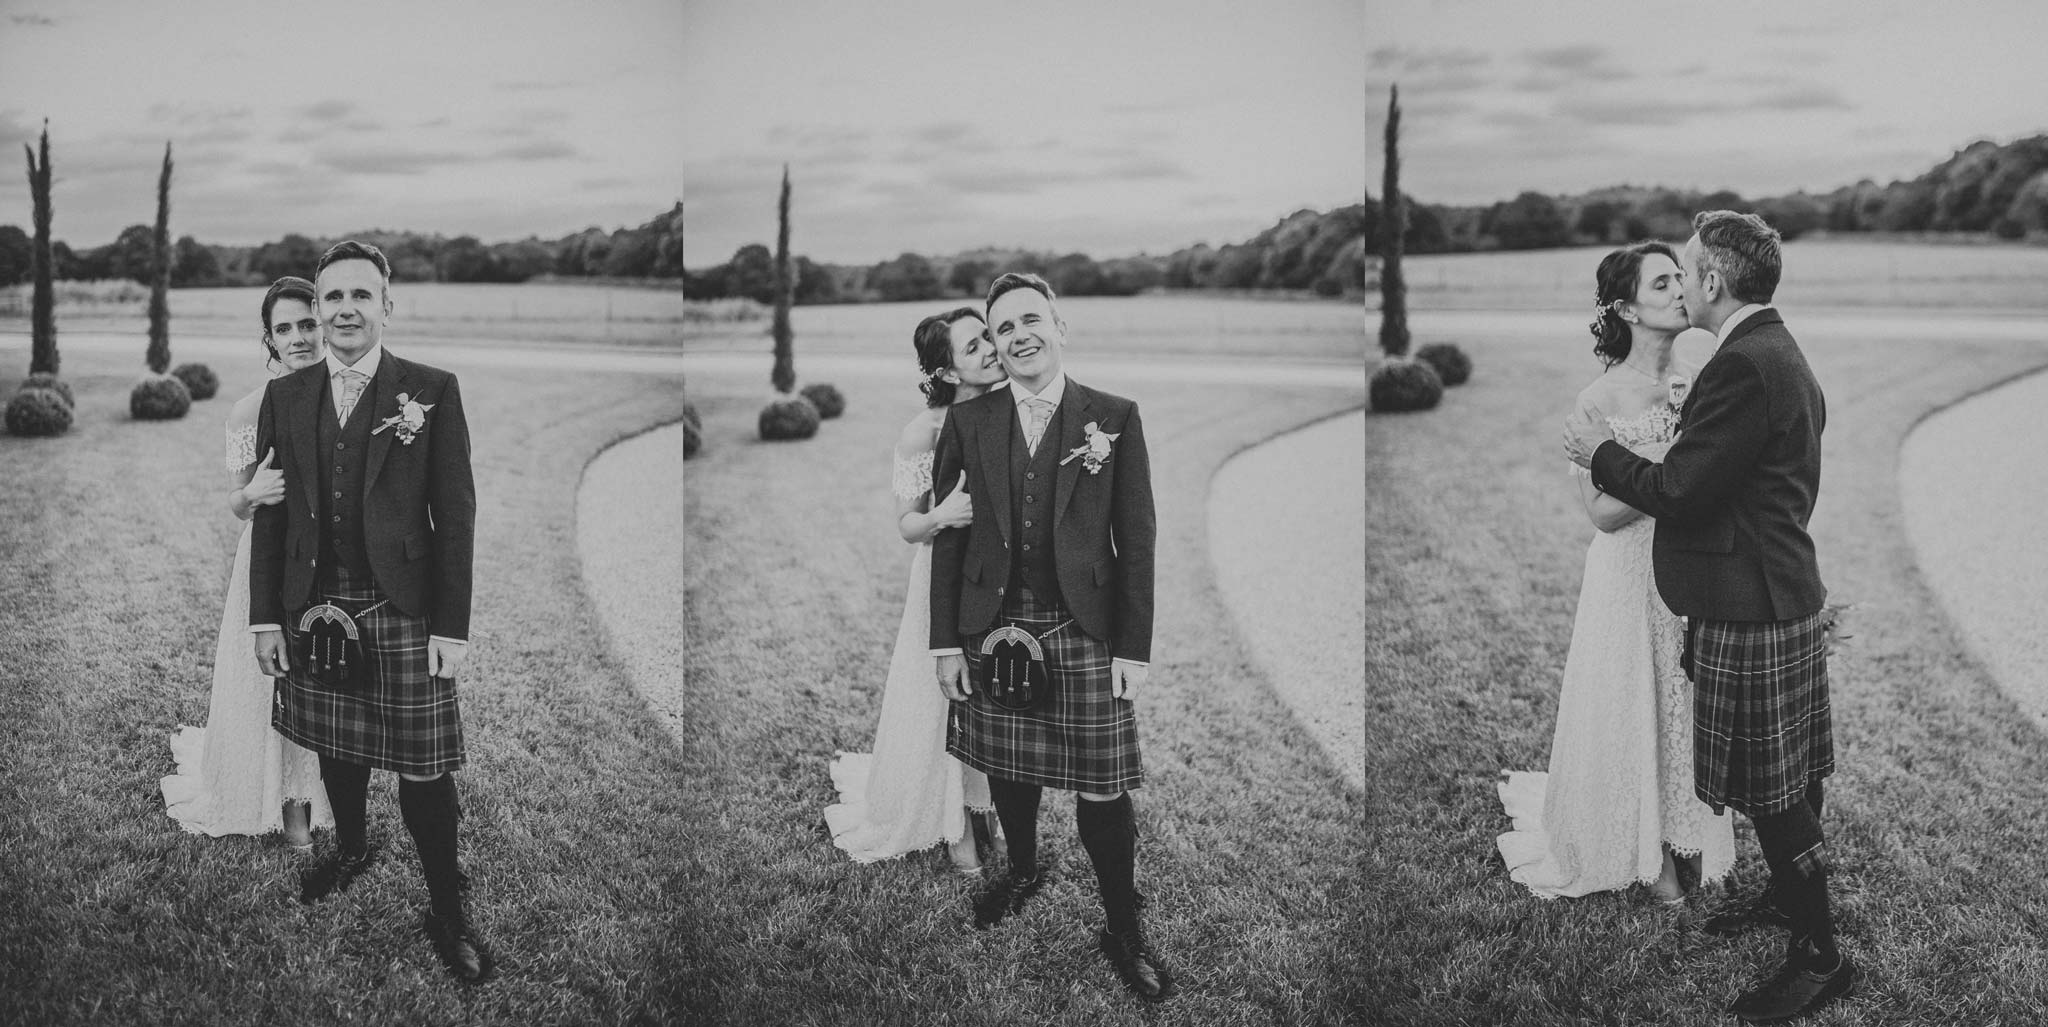 Newly married Scottish couple